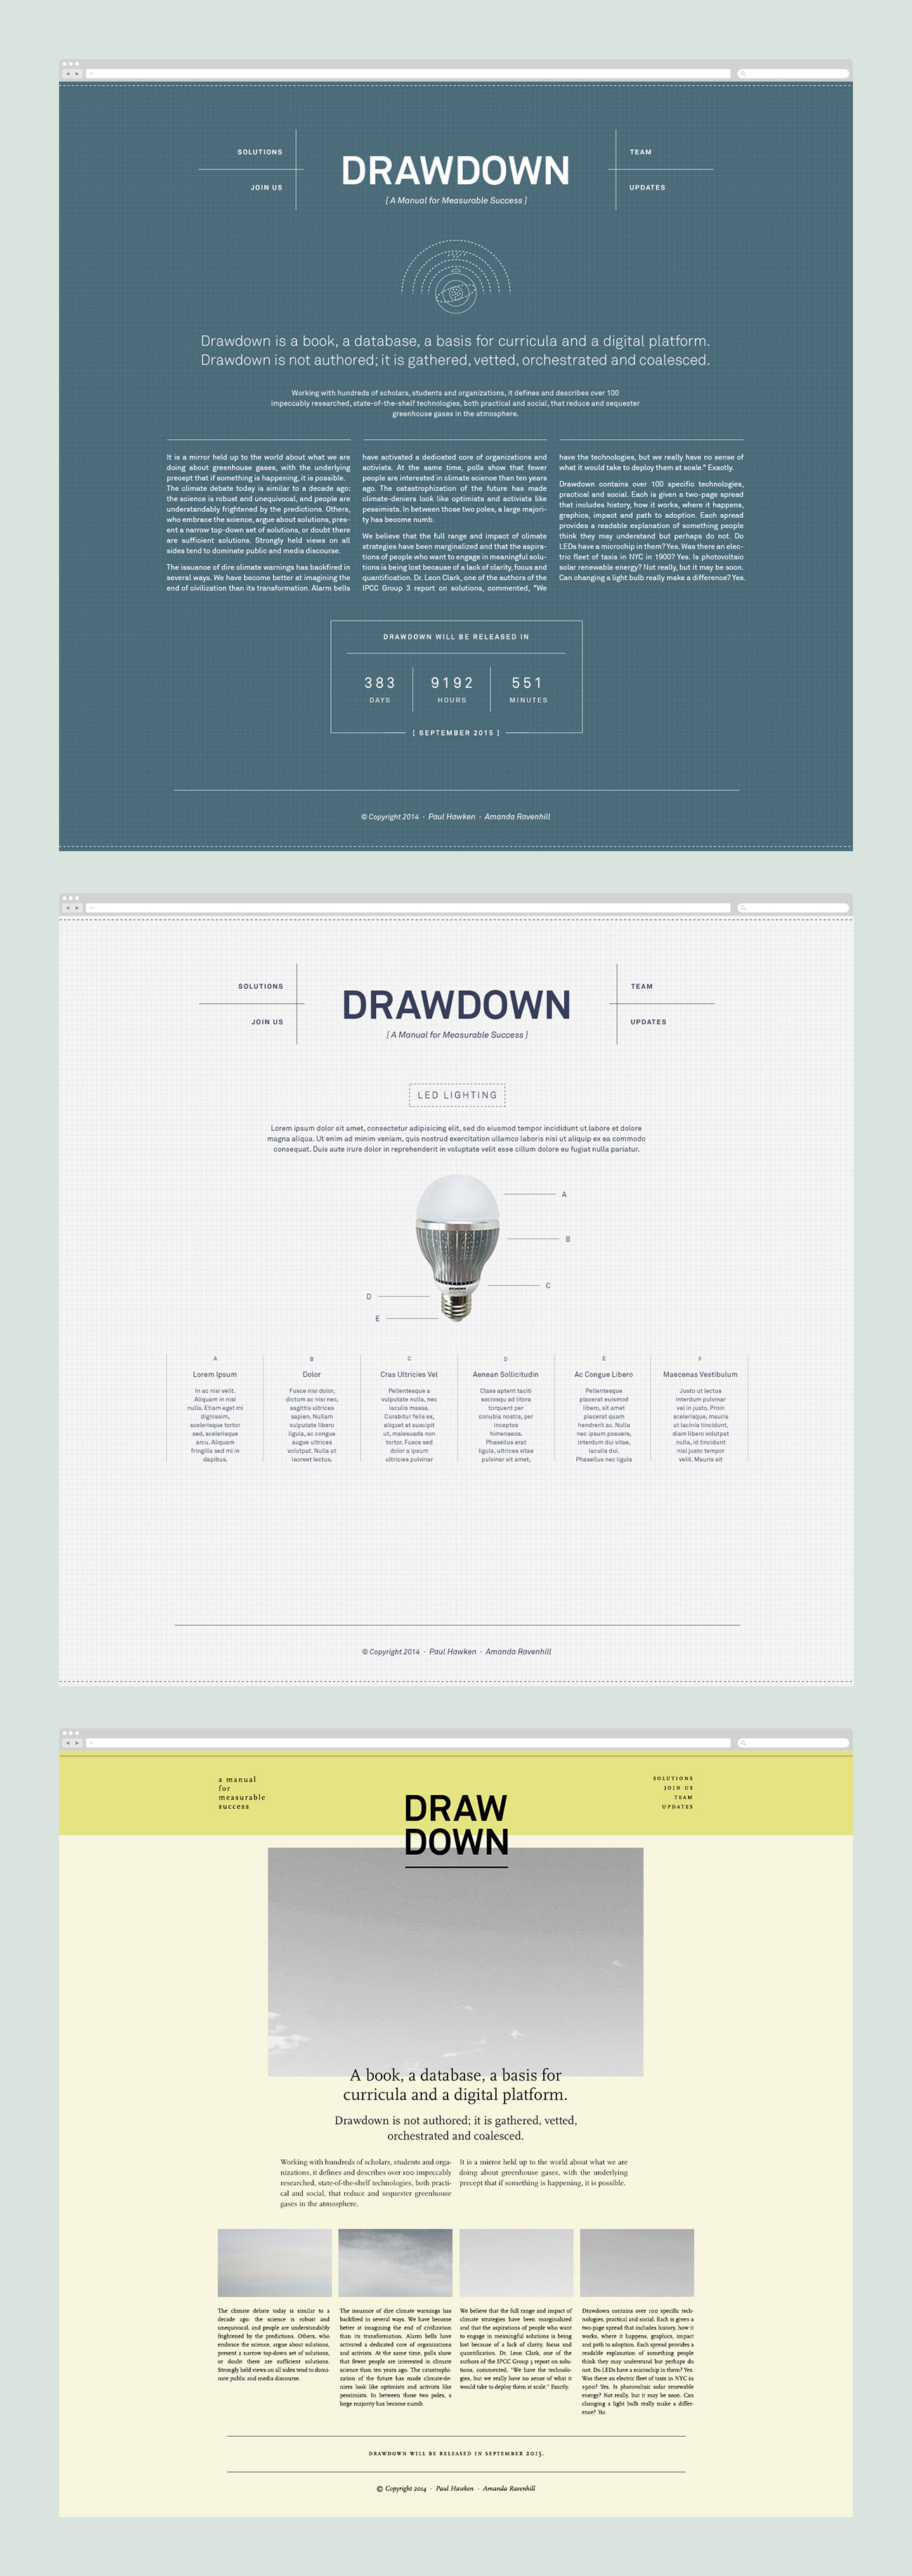 Drawdown_Website_02a